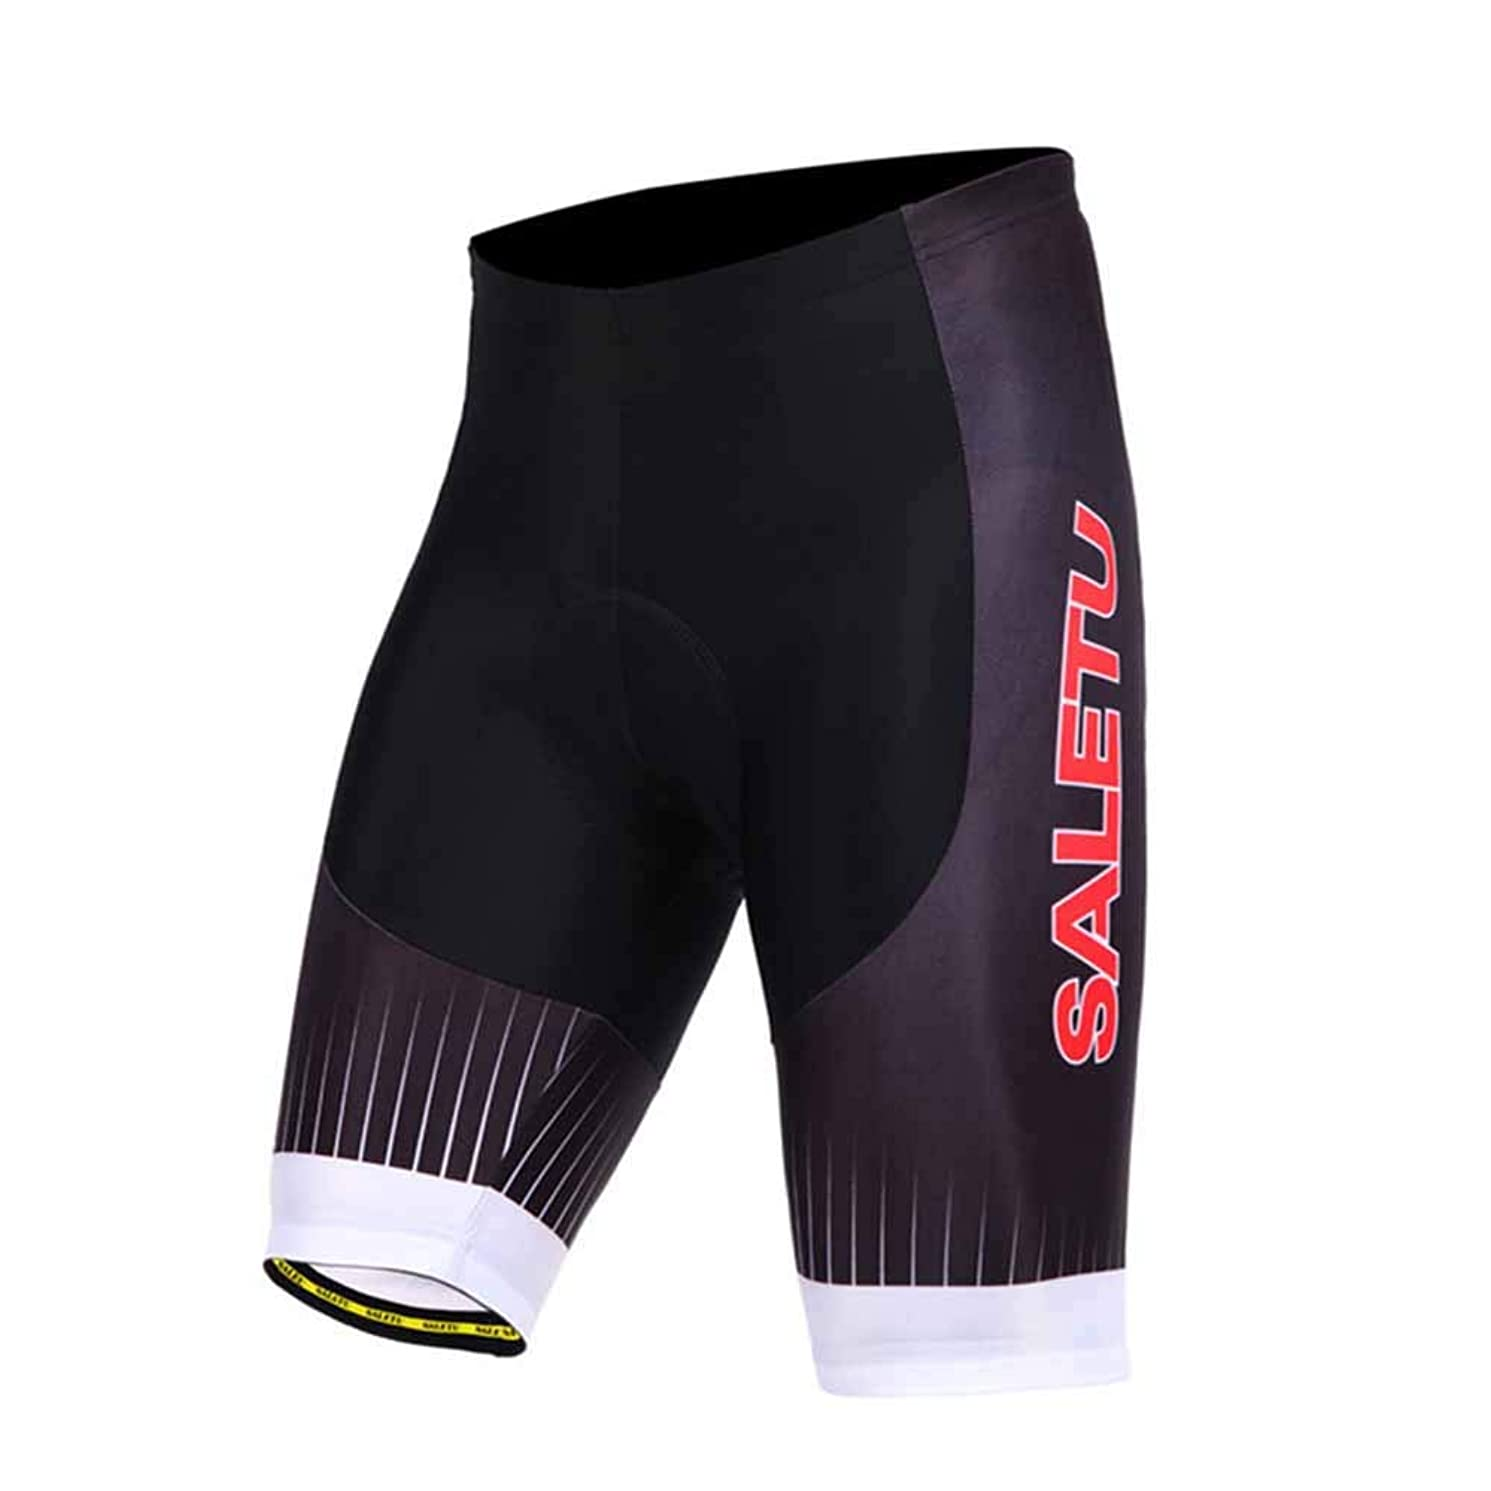 Cycling Shorts Men Padded,Bike Shorts Men with Padding,Breathable and Absorbent, Lycra Bicycle Shorts